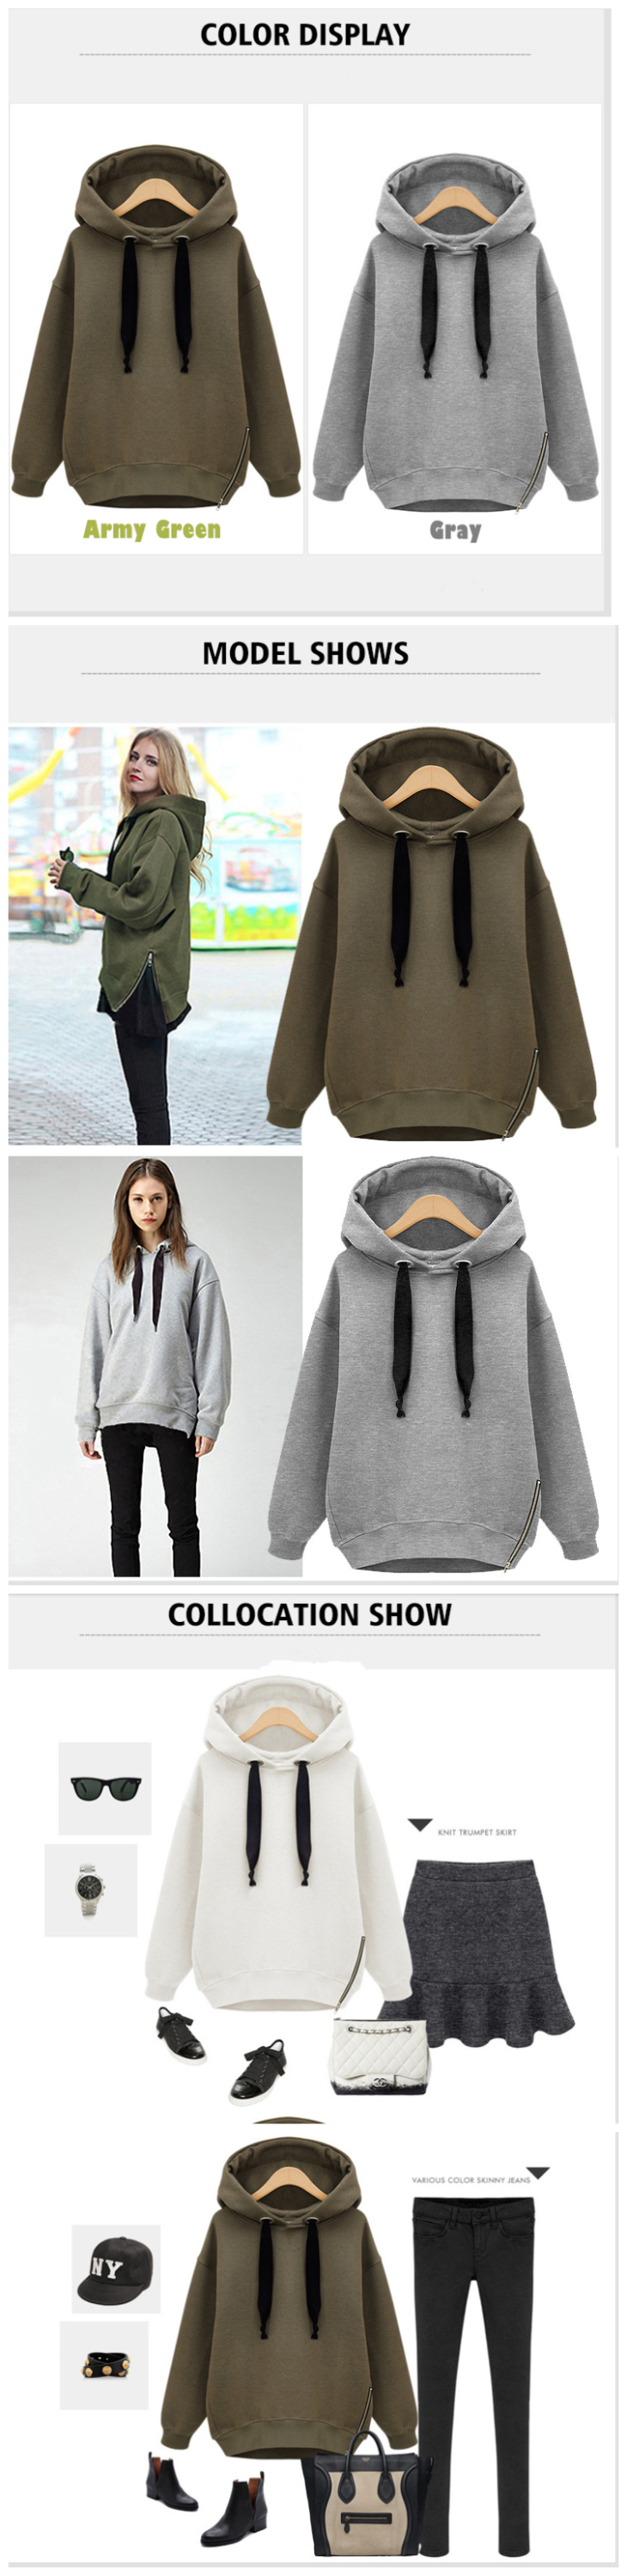 high quality 100% fabric cotton double two sided side zipper hoodie with hood